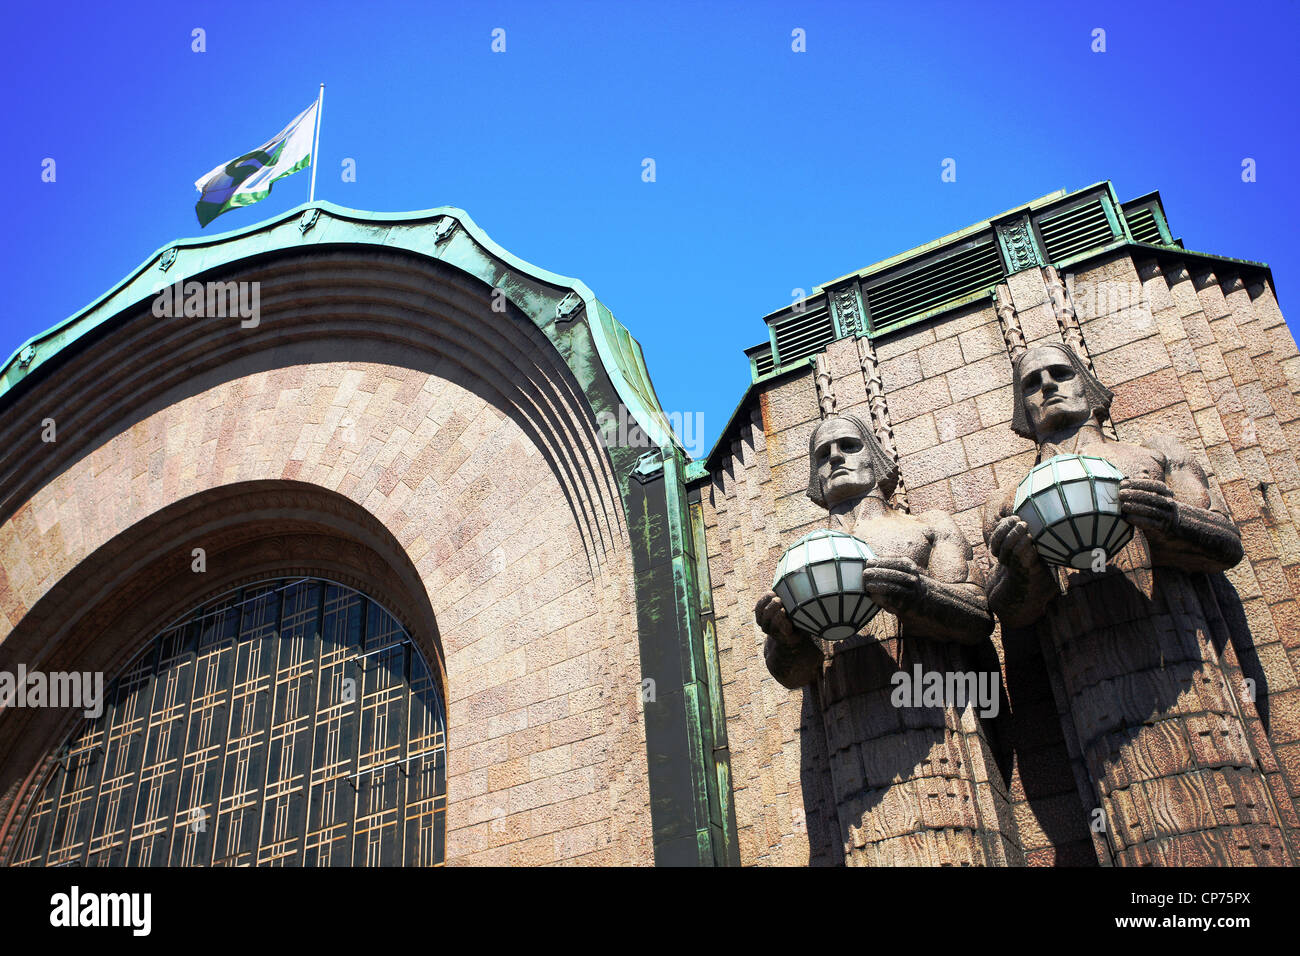 Imposing statues holding spherical lamps at the entrance to Helsinki Railway Station Finland - Stock Image